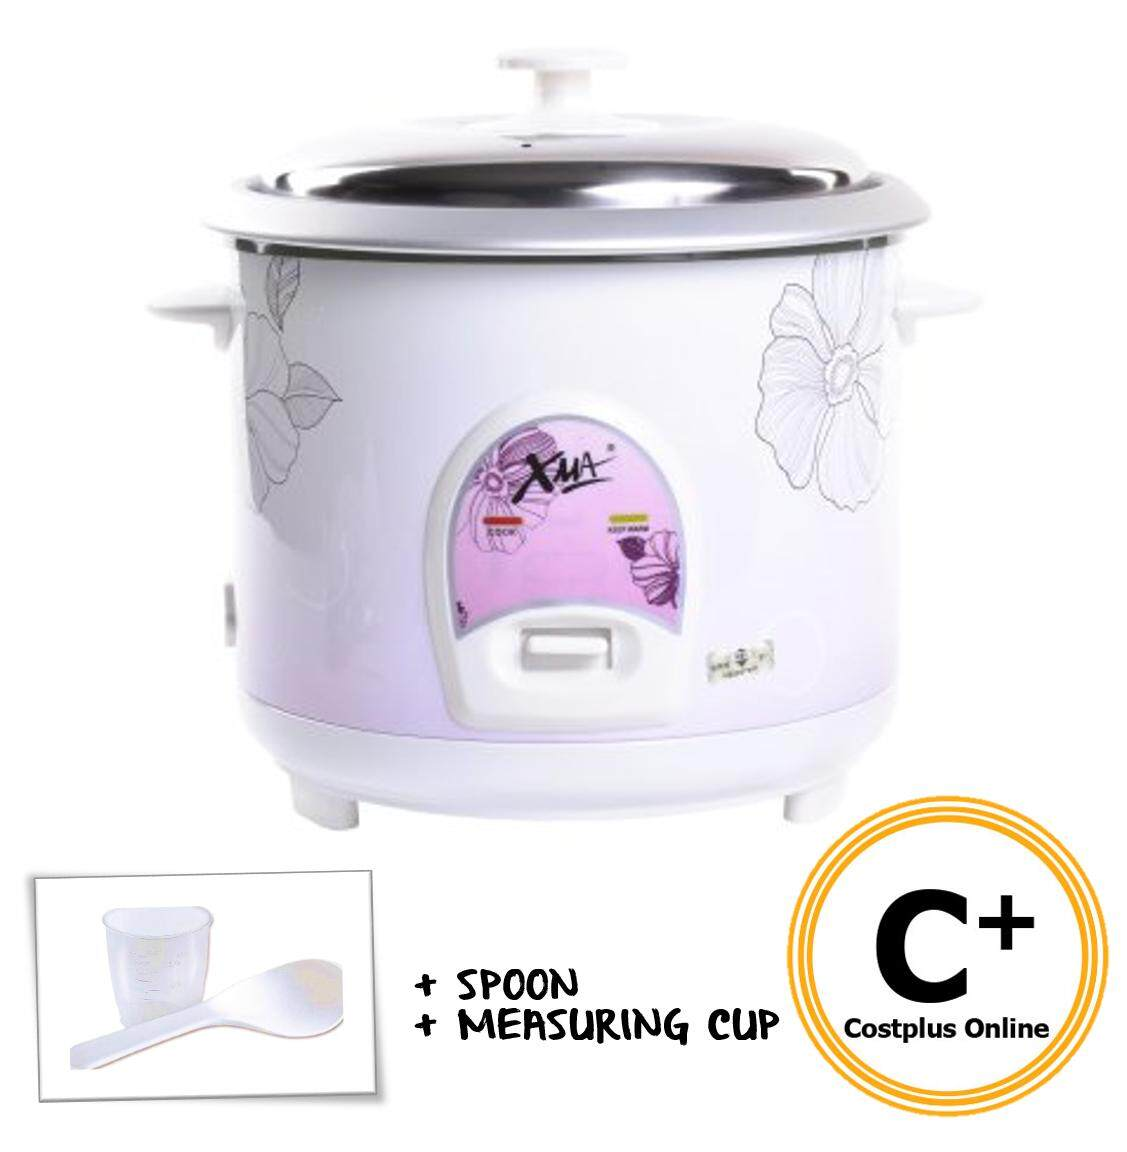 XMA XMA-108RC 1L Rice Cooker with FREE Spoon + Measuring Cup